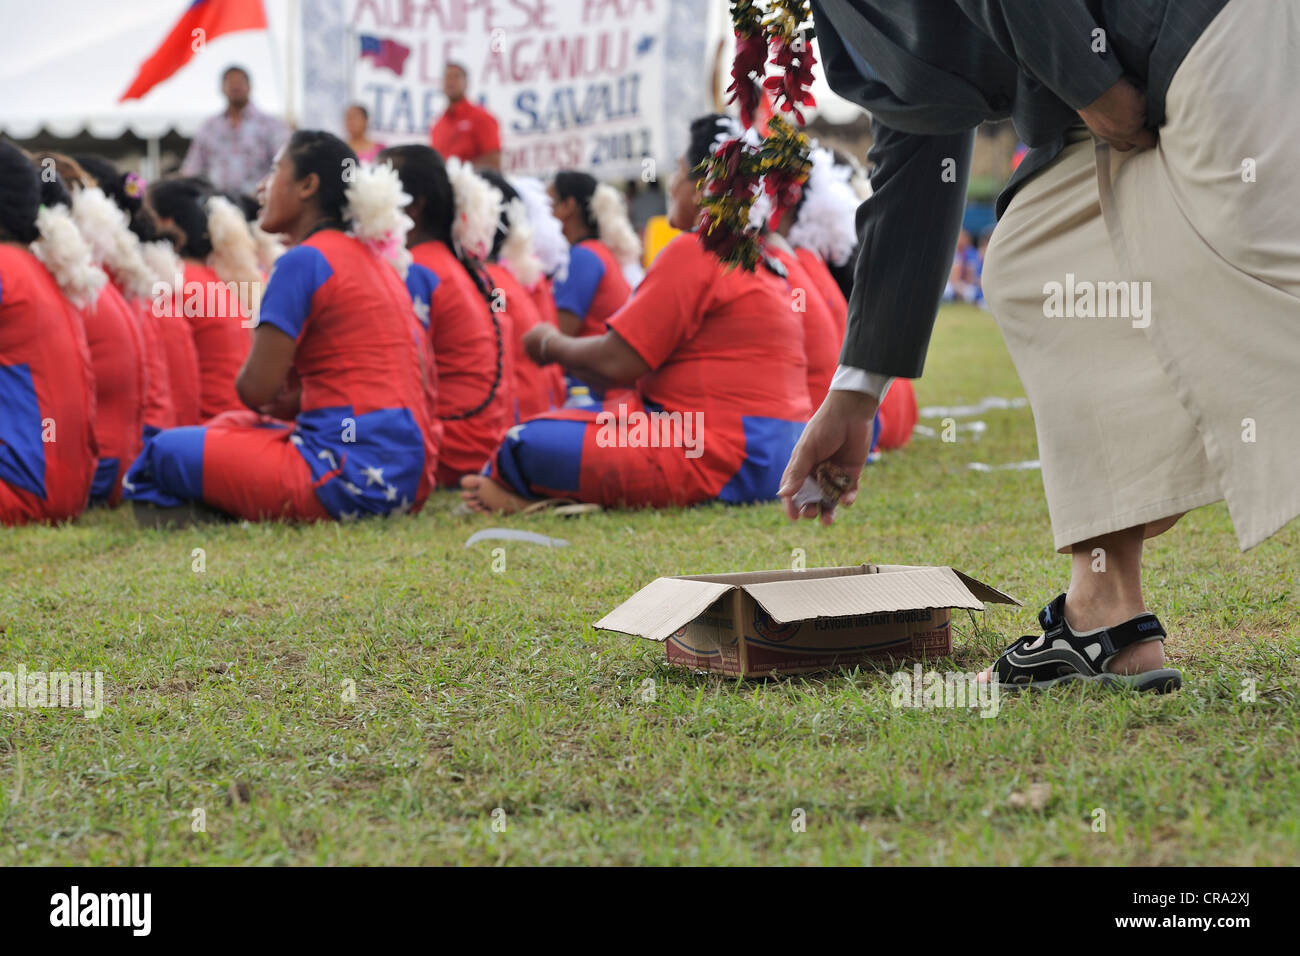 Guests come forward and contribute money into a cardboard box for performers at celebrations of Samoa's 50 years - Stock Image